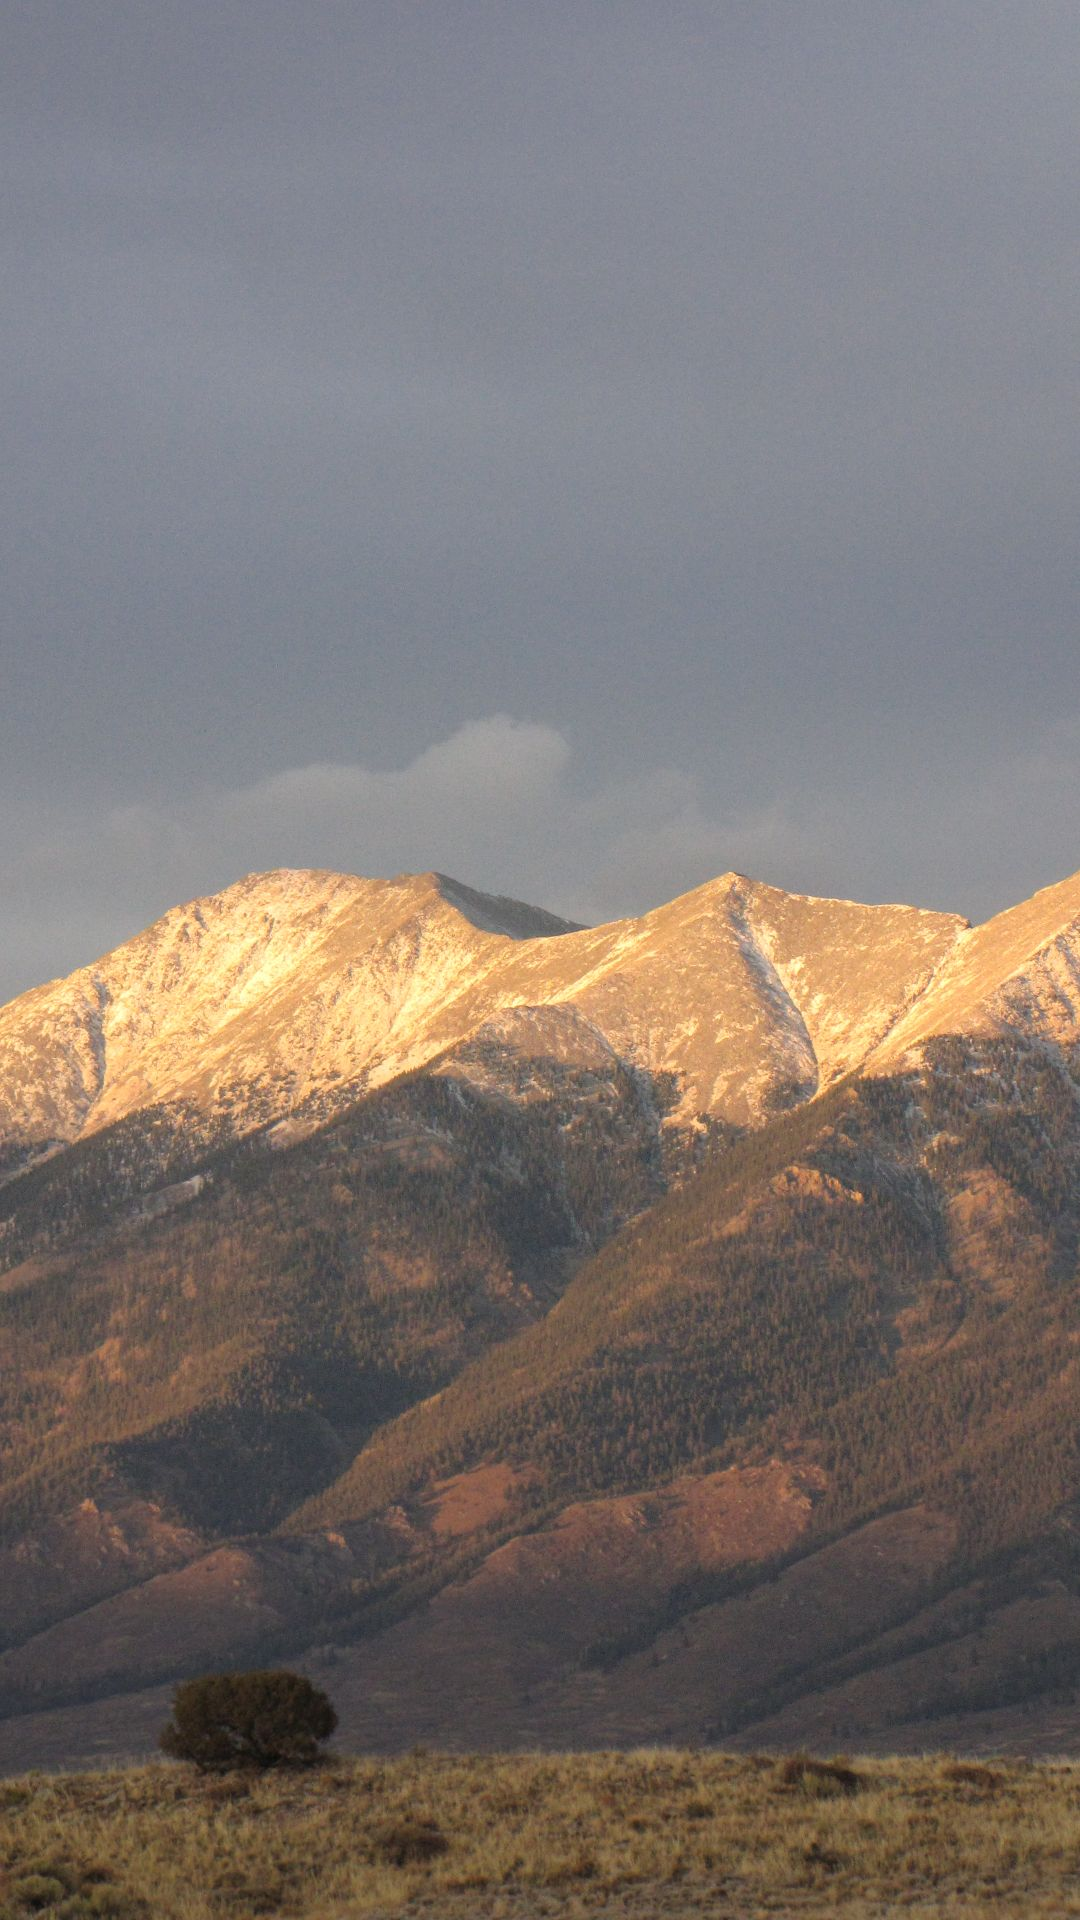 Villa Grove, CO, USA - Alpenglow abounds